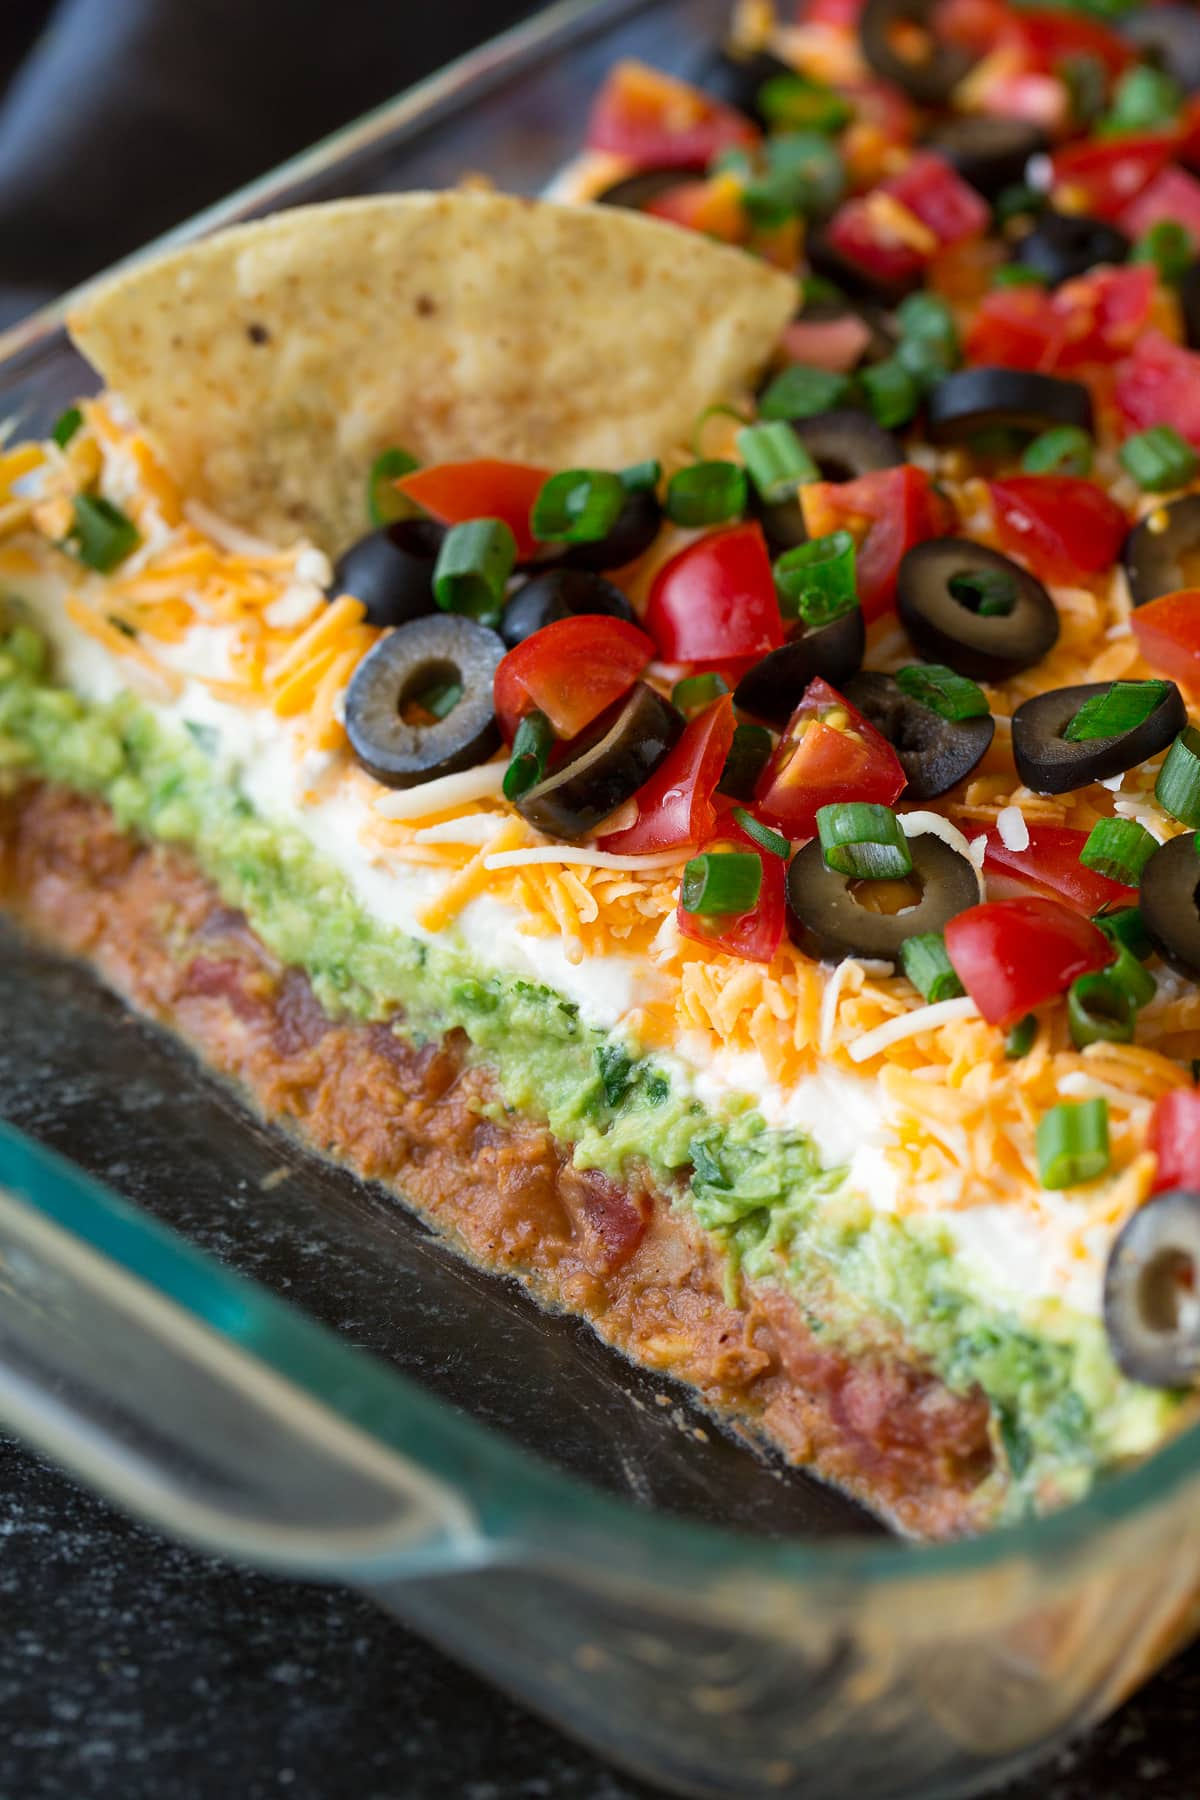 Close up image of 7 layer dip showing all the separate layers.